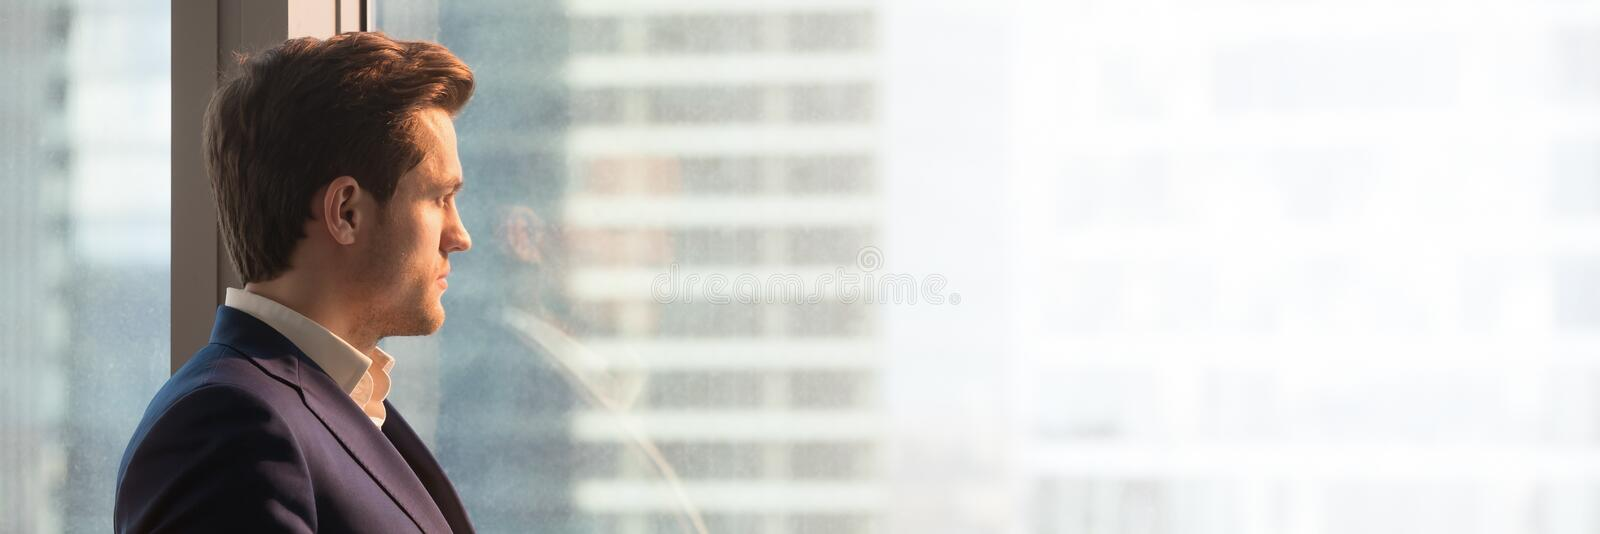 Panoramic image businessman in suit looking through office window royalty free stock photo